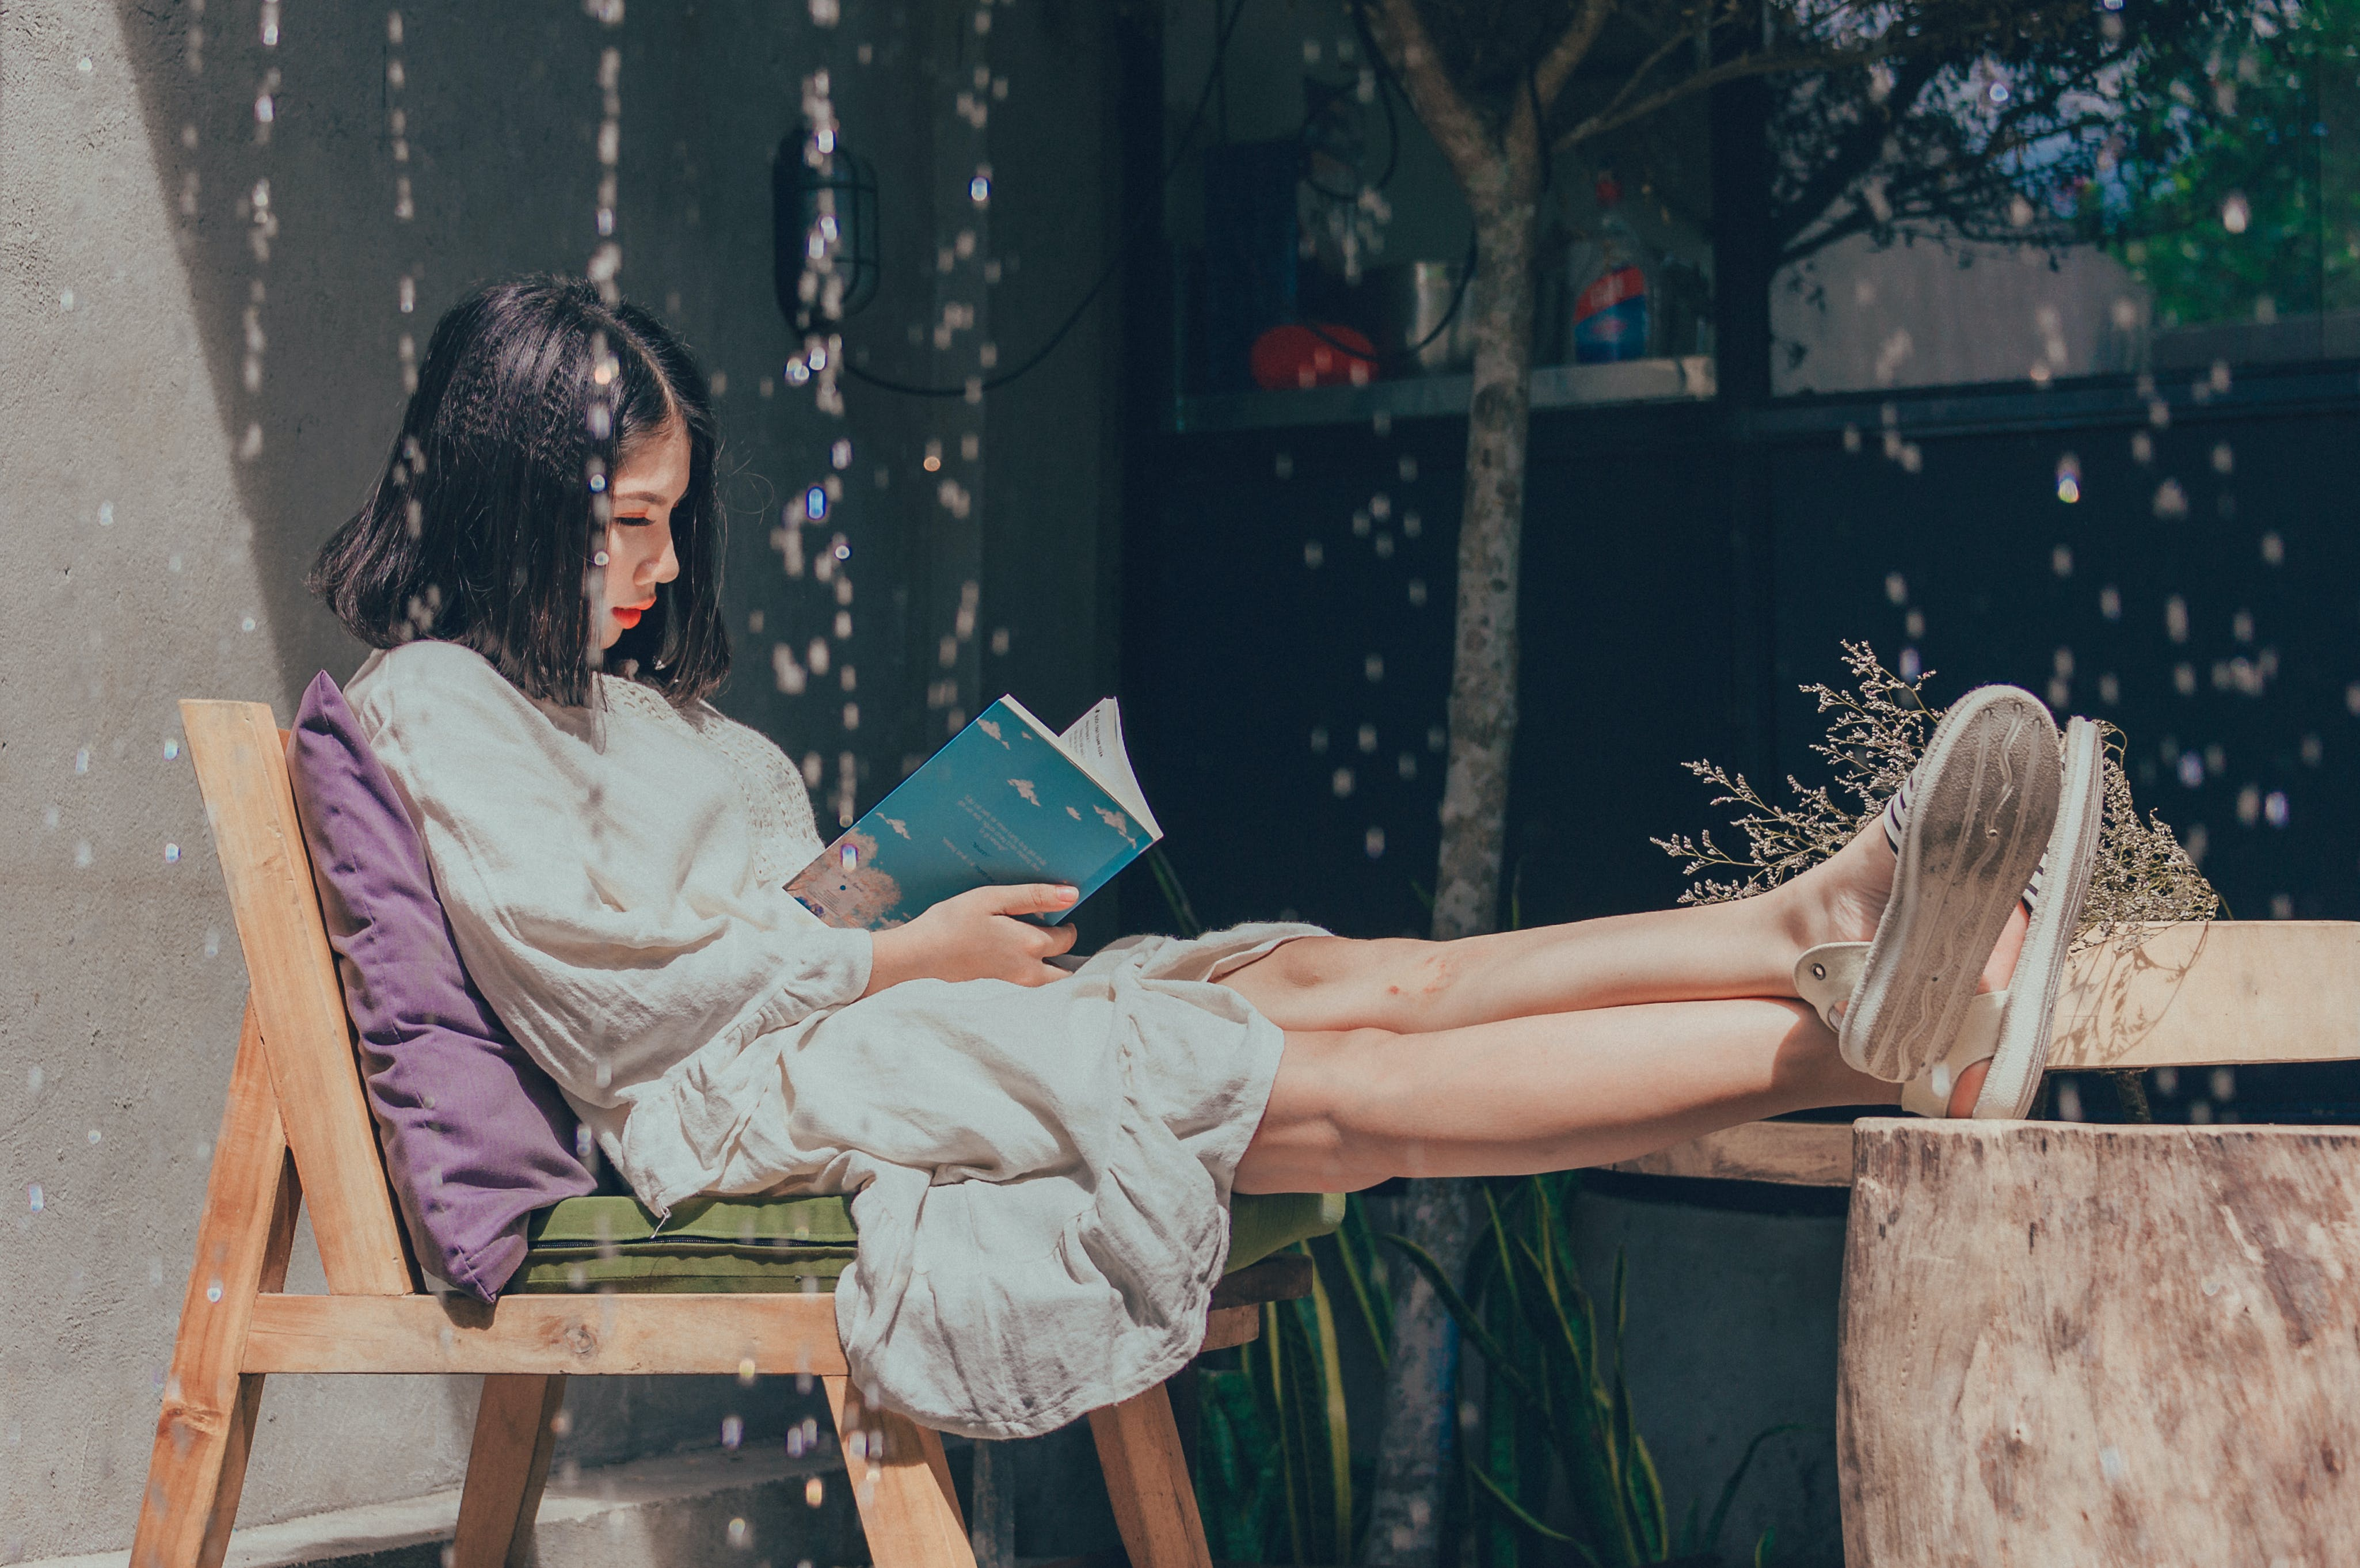 Woman Sitting on Chair While Reading Book